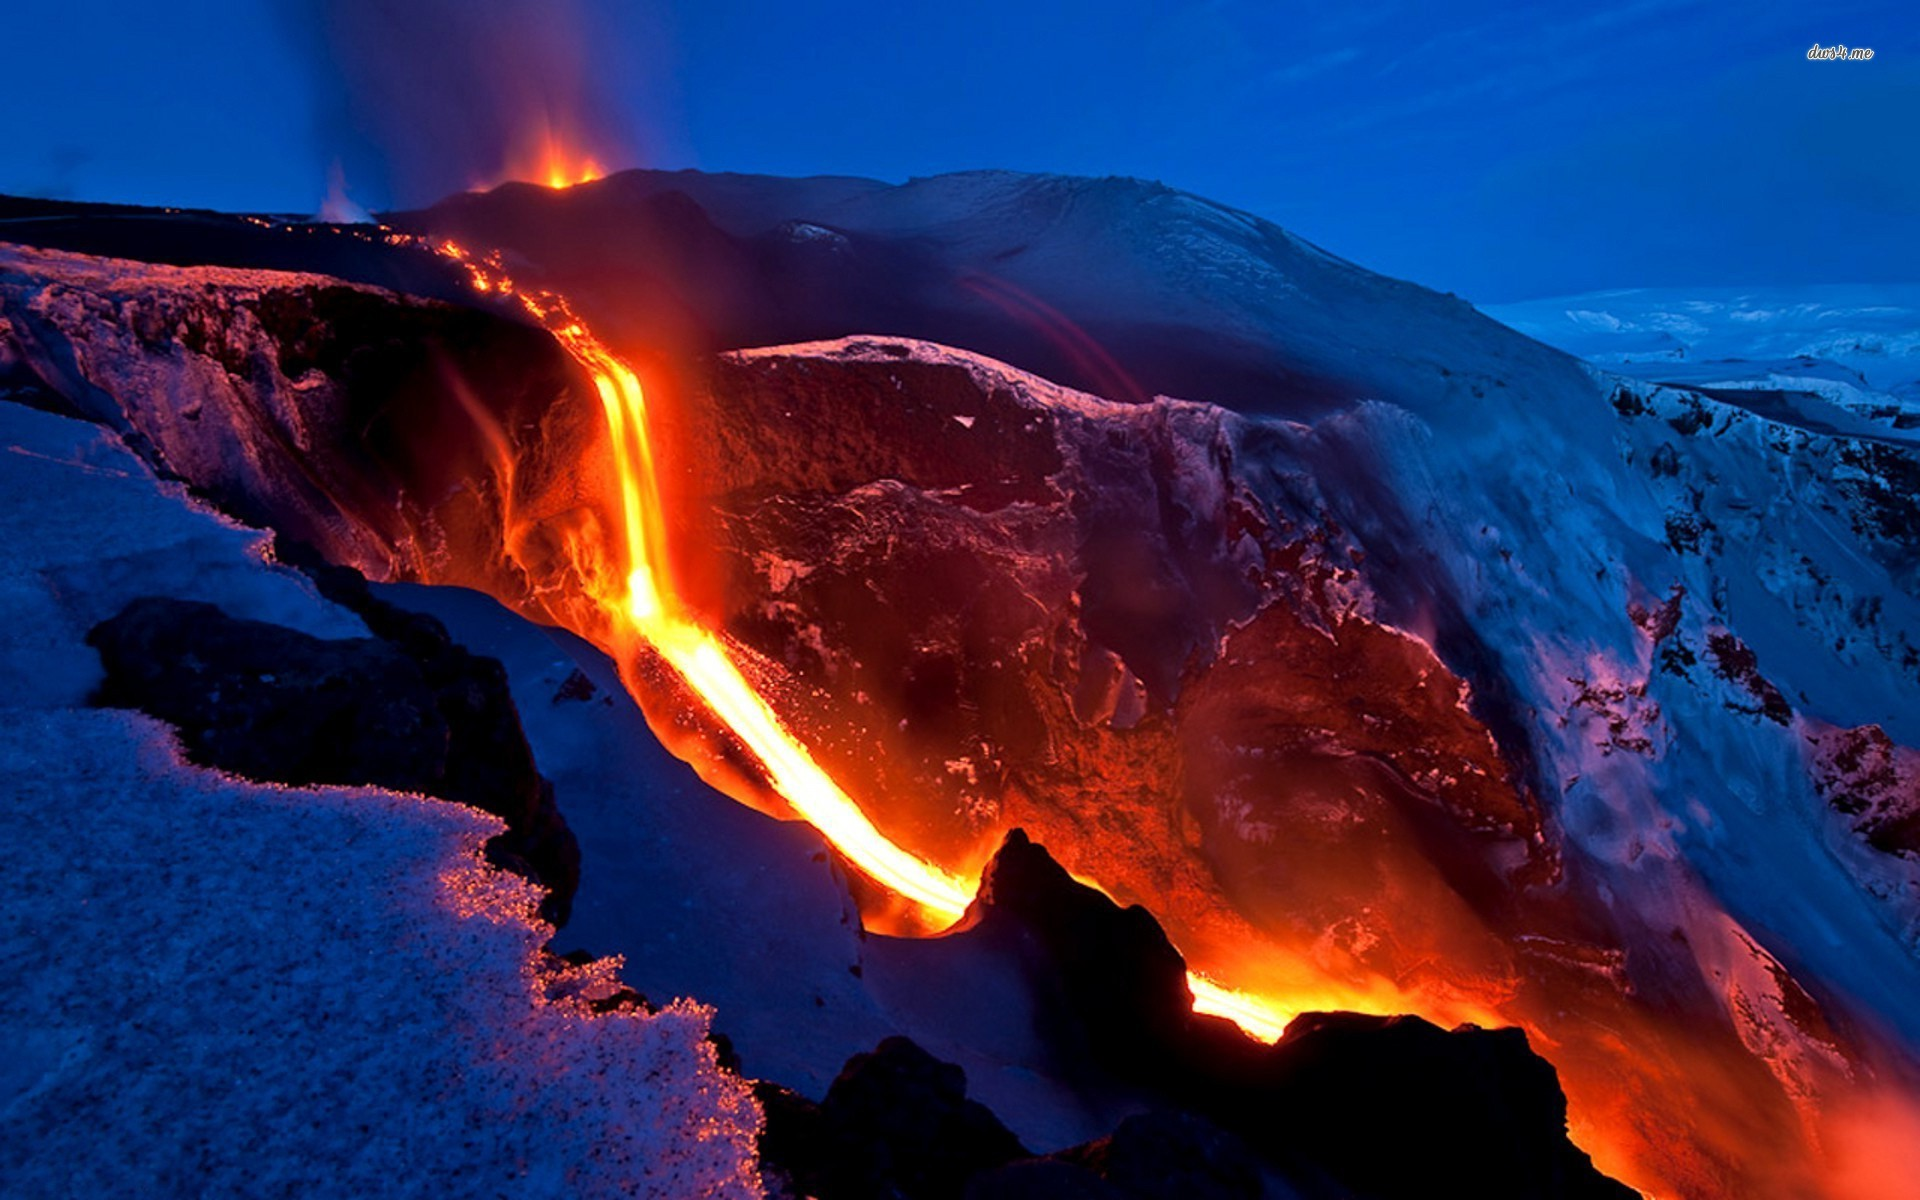 Volcano Wallpapers HD Backgrounds, Images, Pics, Photos Free